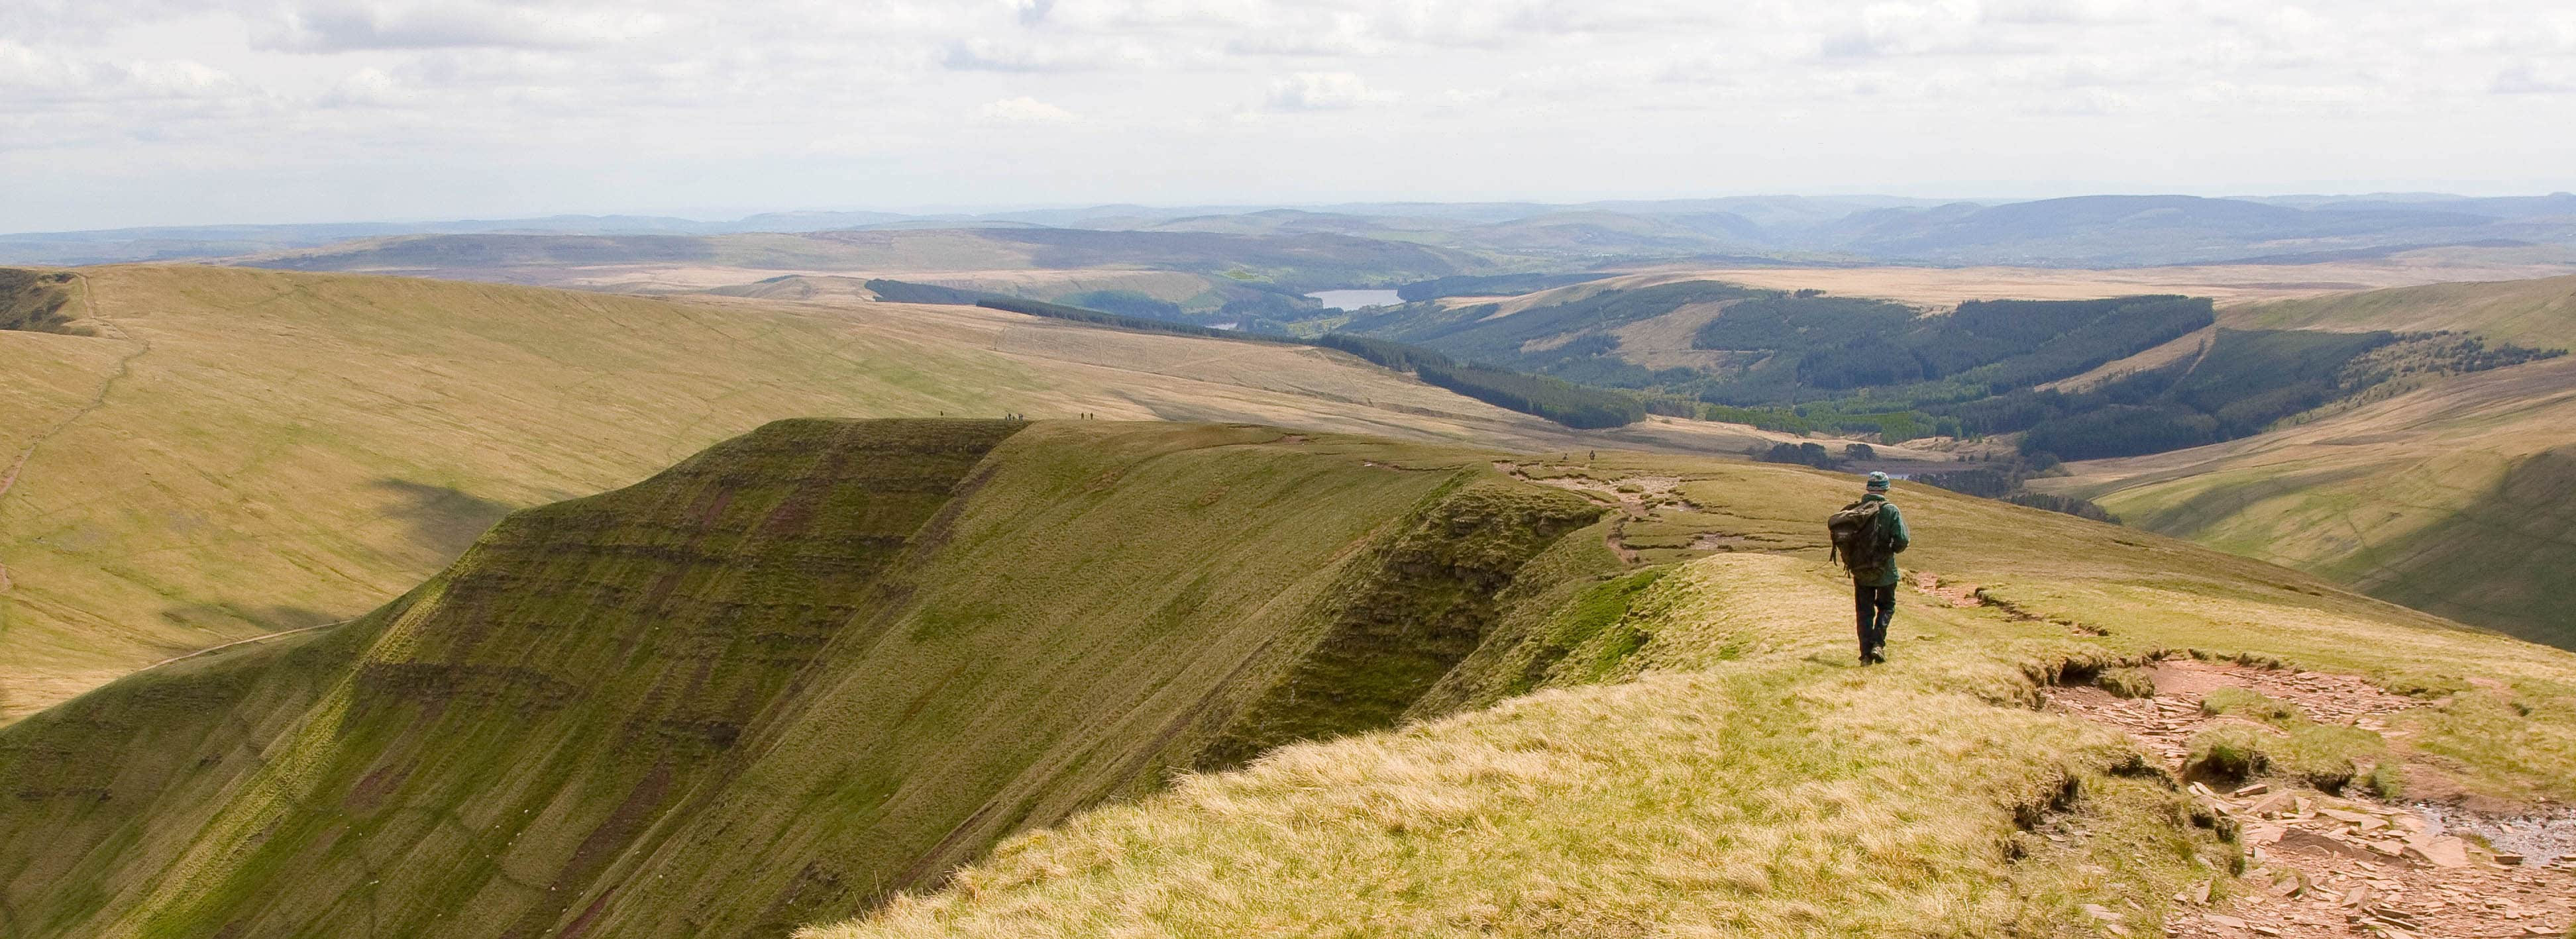 brecon-beacons-celtictrails-street view maps